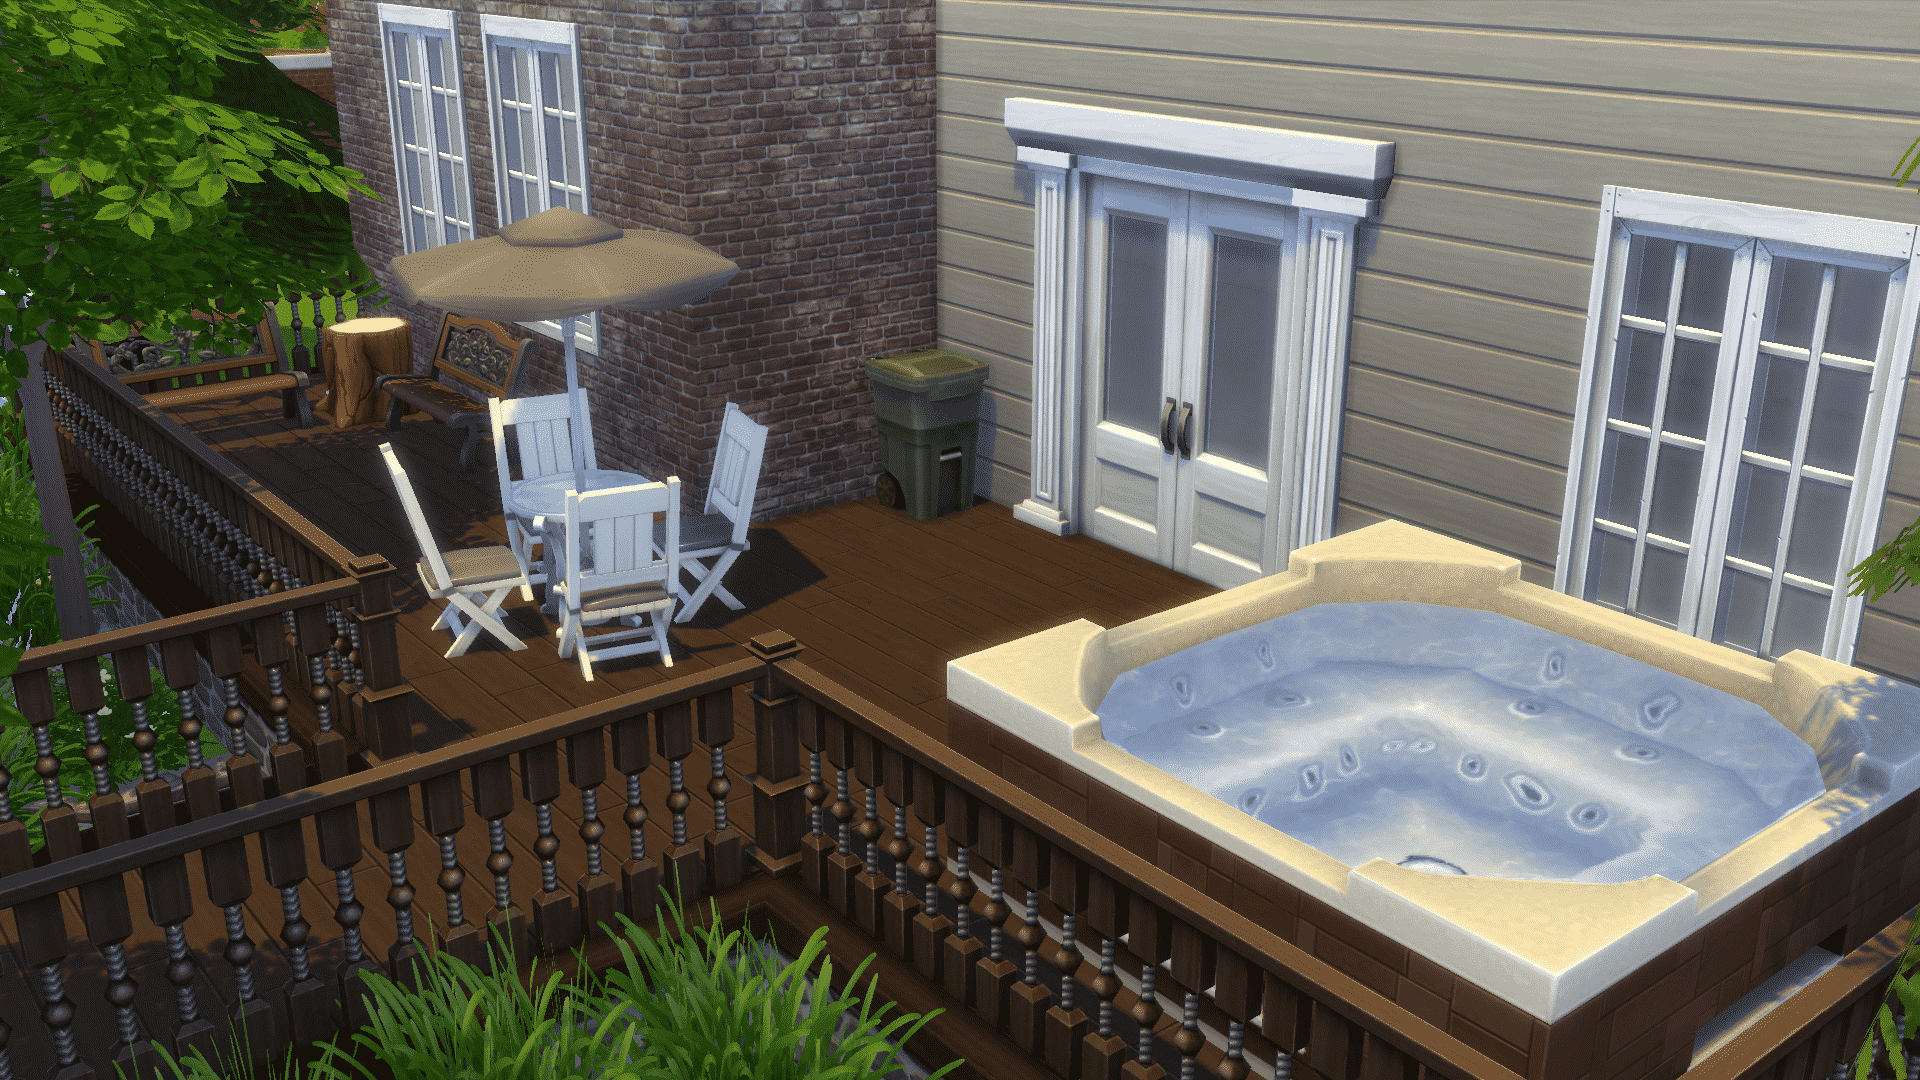 The Sims 4 Building Decorating Your Backyard